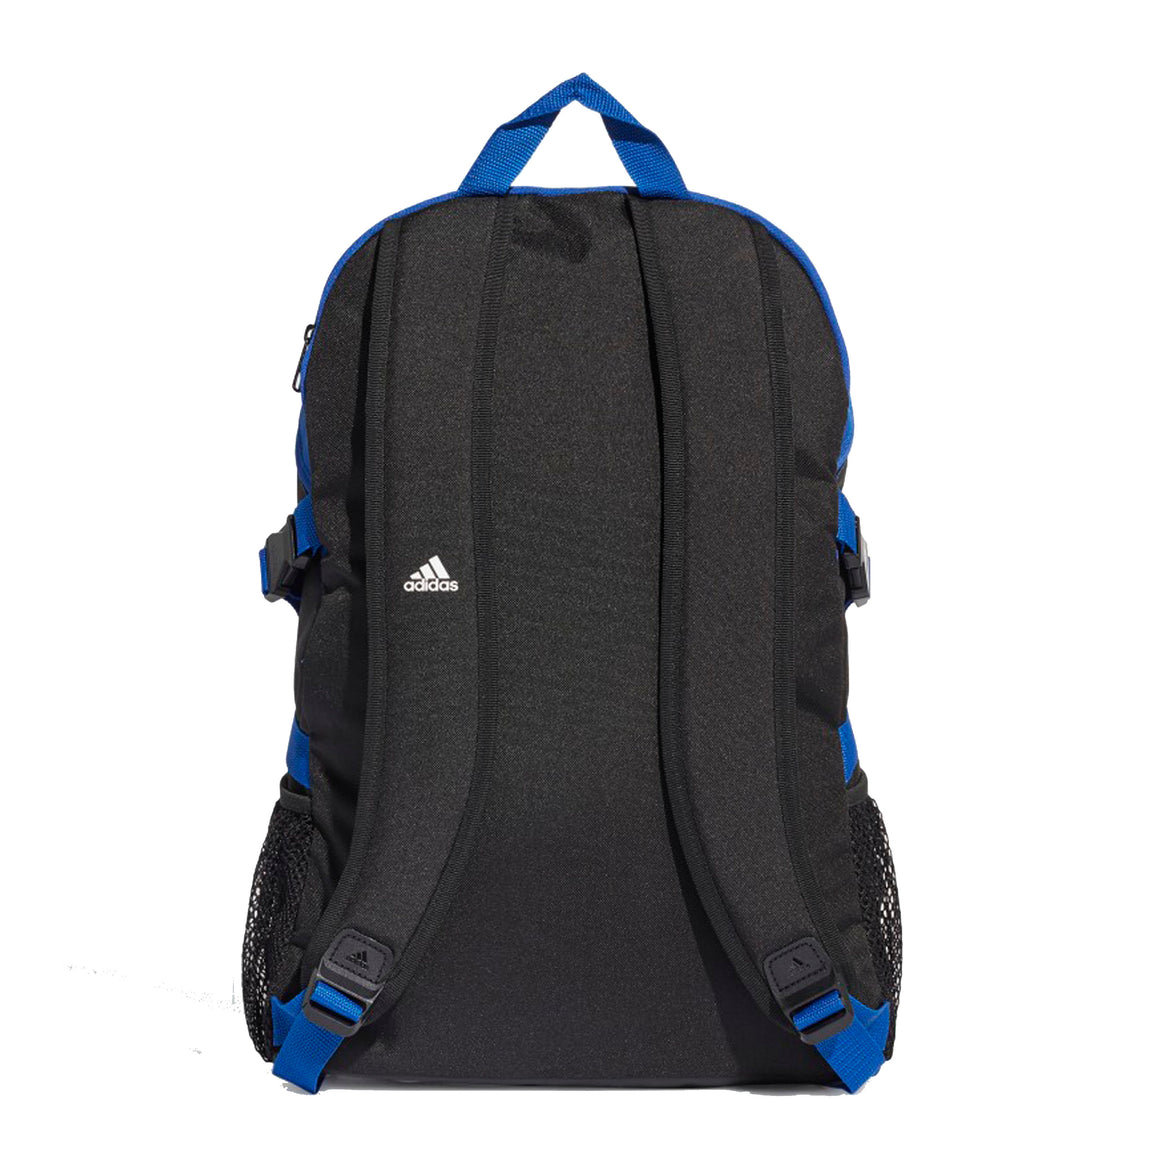 Power 5 Backpack in Royal Blue / White